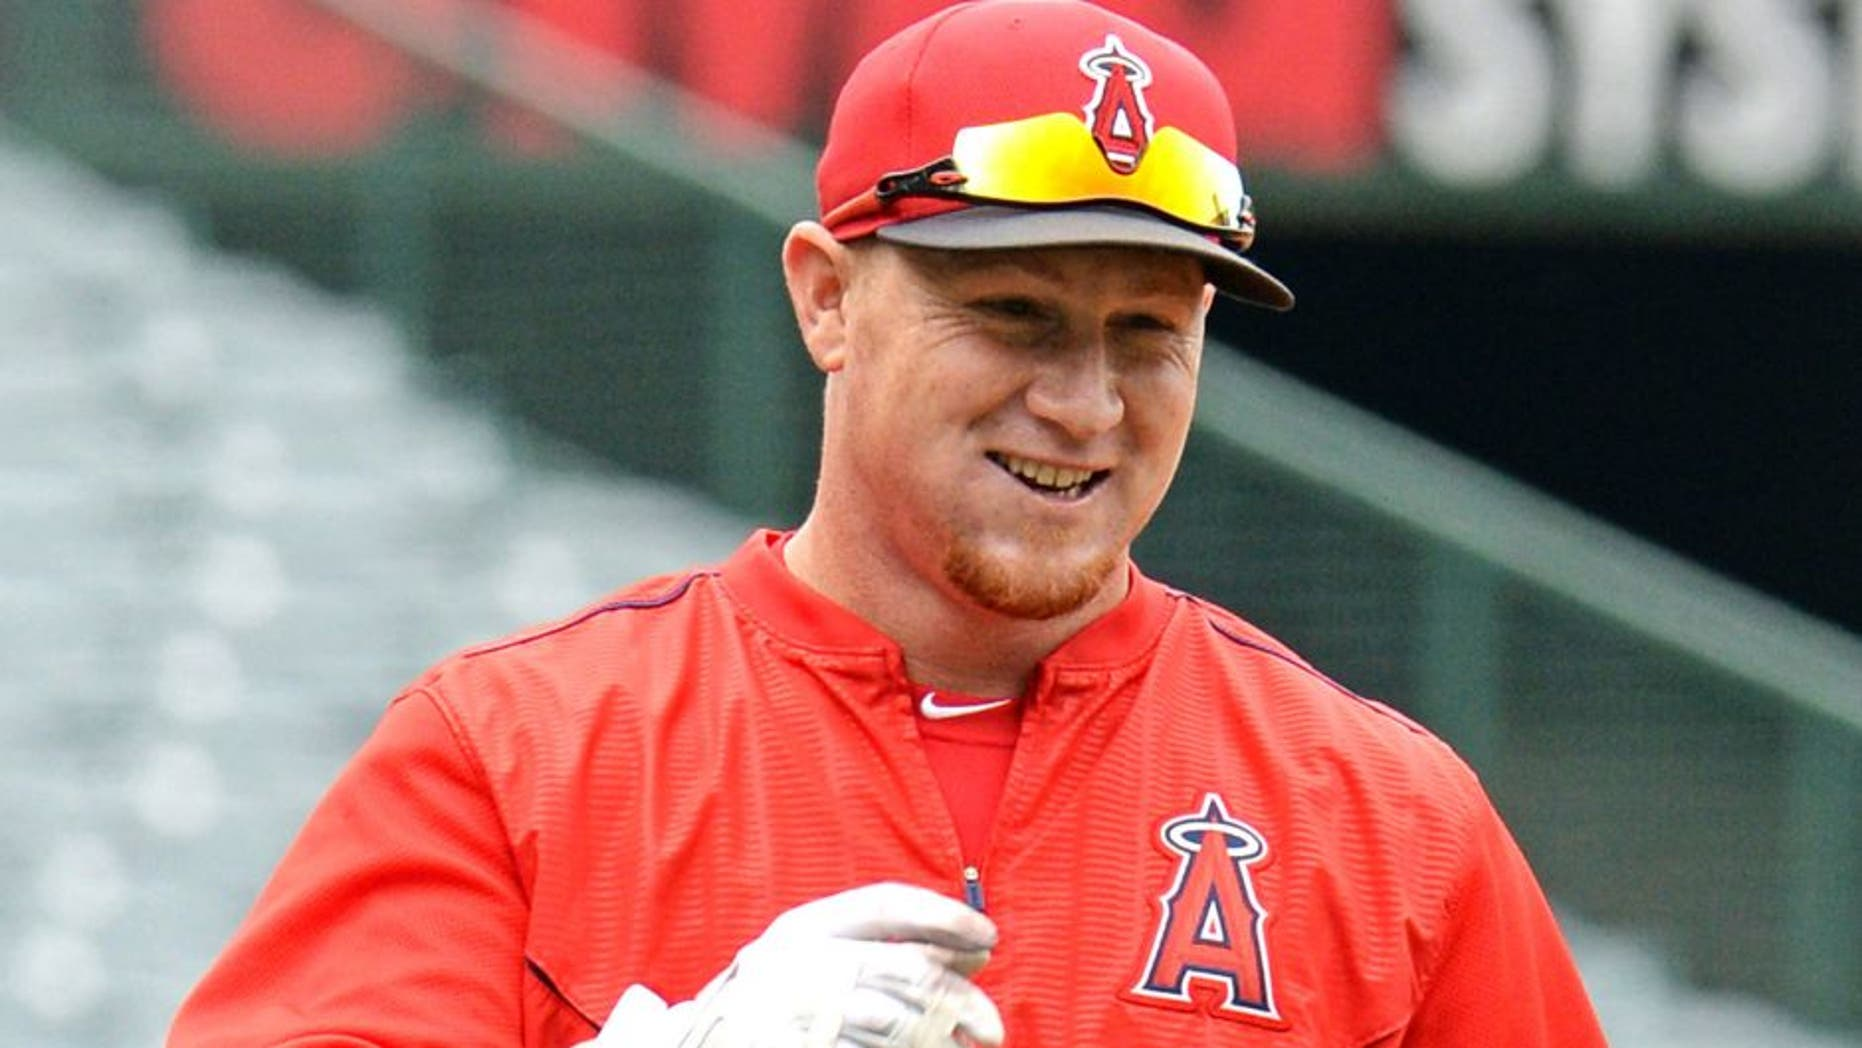 Apr 22, 2015; Anaheim, CA, USA; Los Angeles Angels right fielder Kole Calhoun (56) warms up before the game against the Oakland Athletics at Angel Stadium of Anaheim. Mandatory Credit: Jayne Kamin-Oncea-USA TODAY Sports